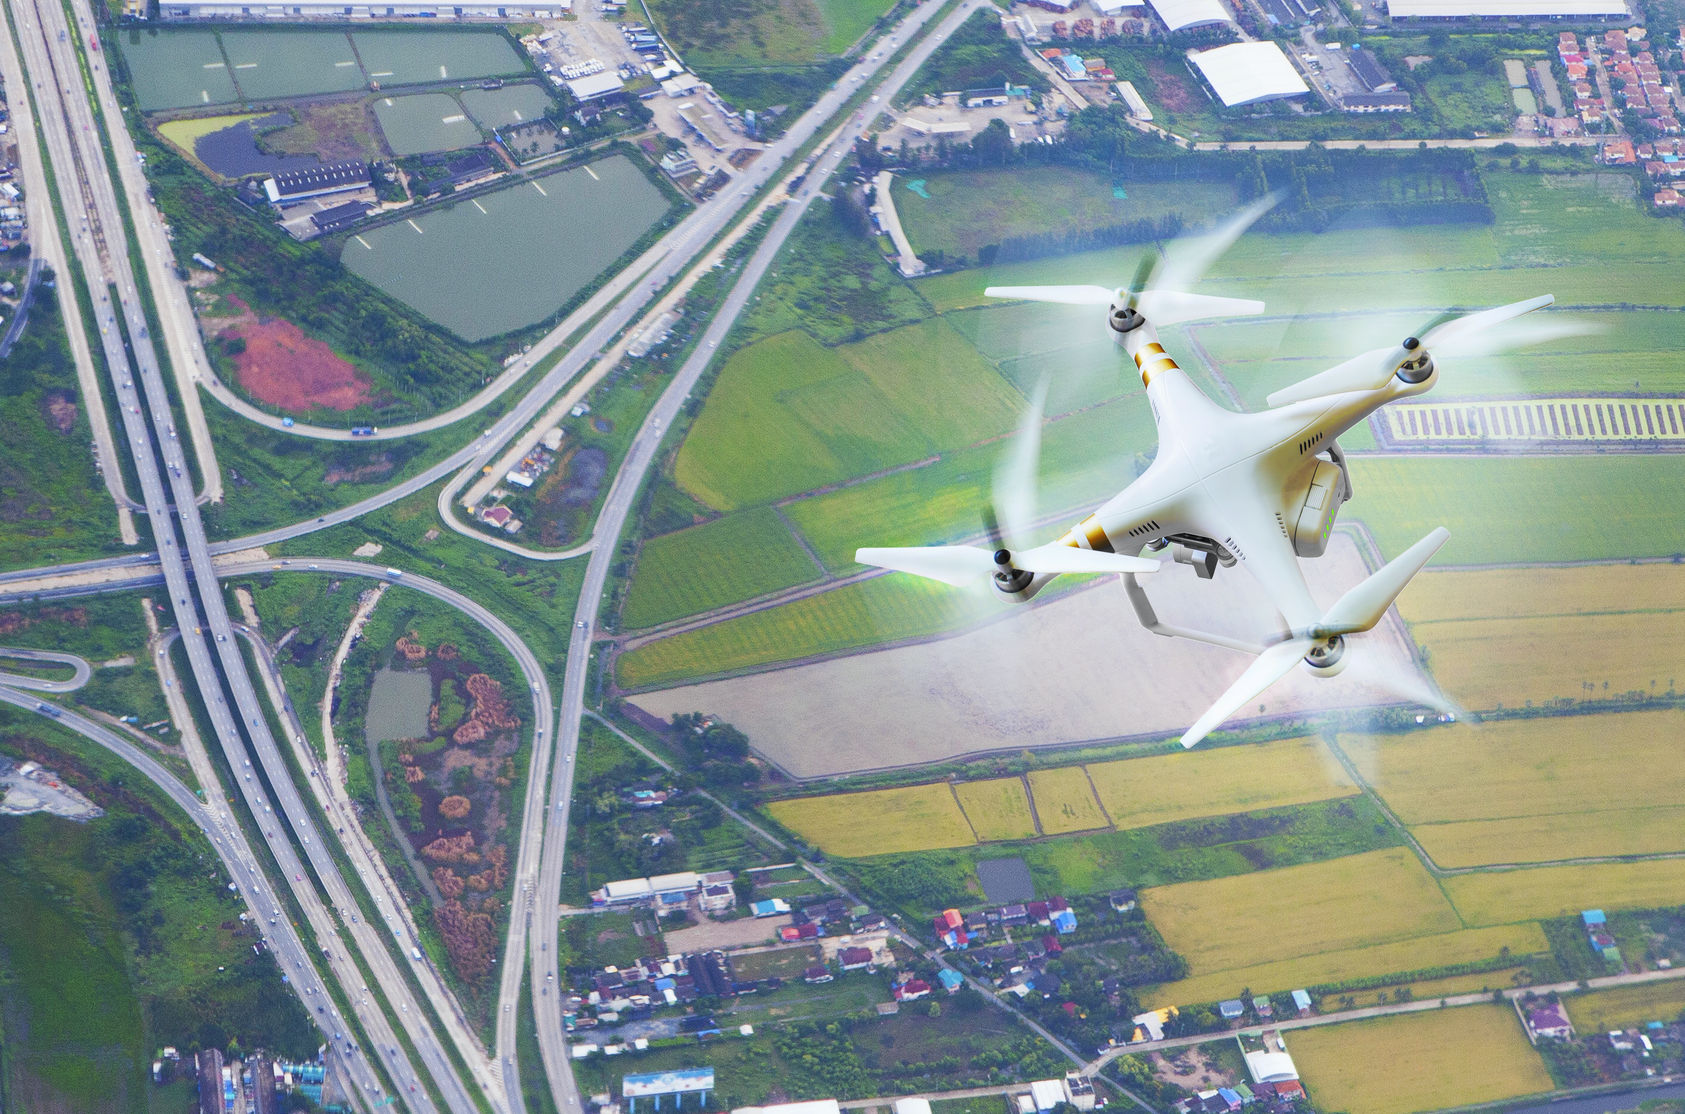 Aerial Photography Industry Expected To Grow Despite Drone Regulations